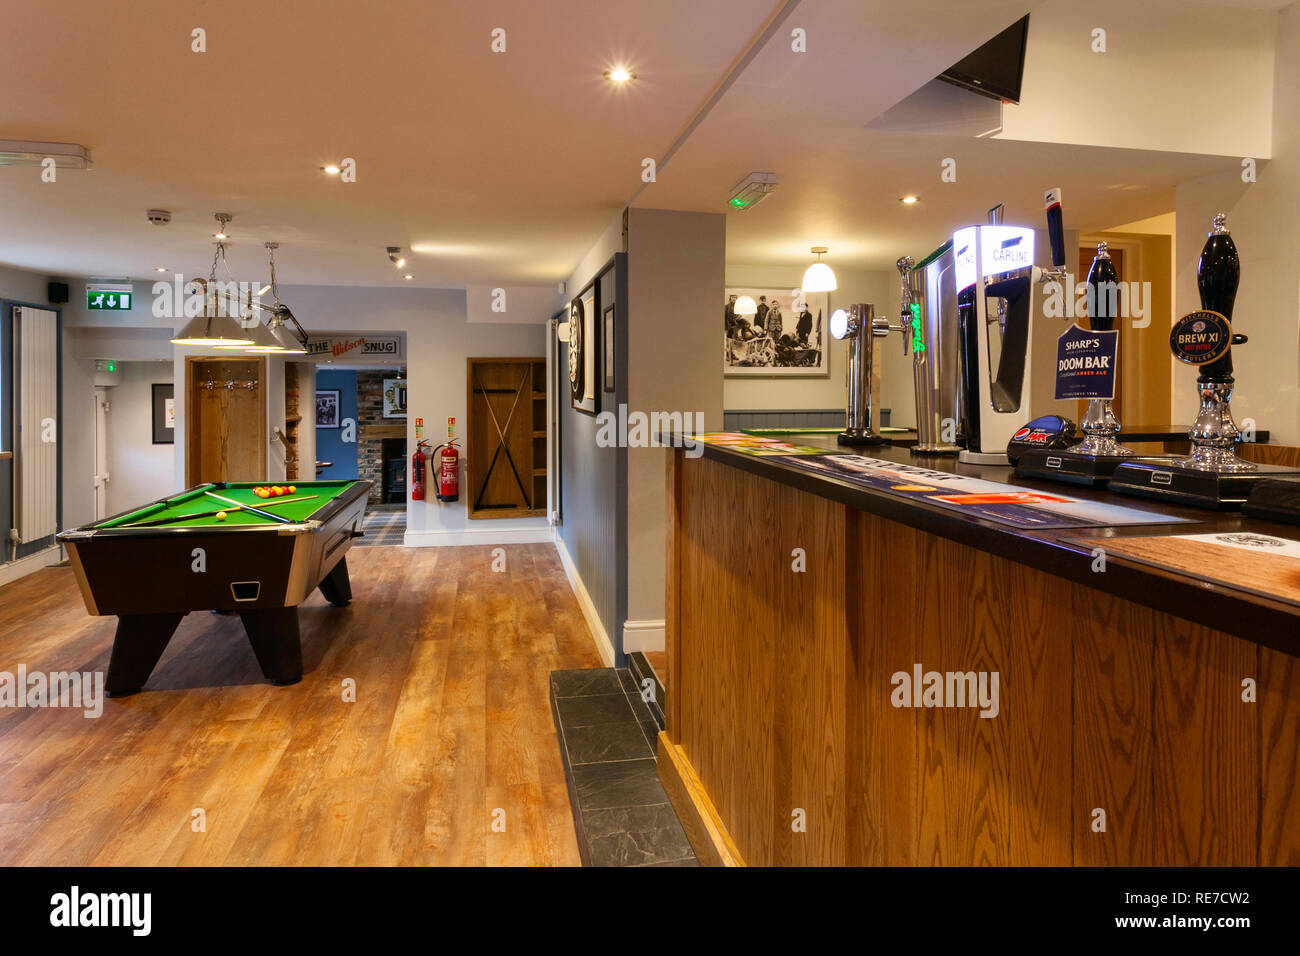 The Nelthorpe Arms pub in South Ferriby, North Lincolnshire, UK - Stock Image